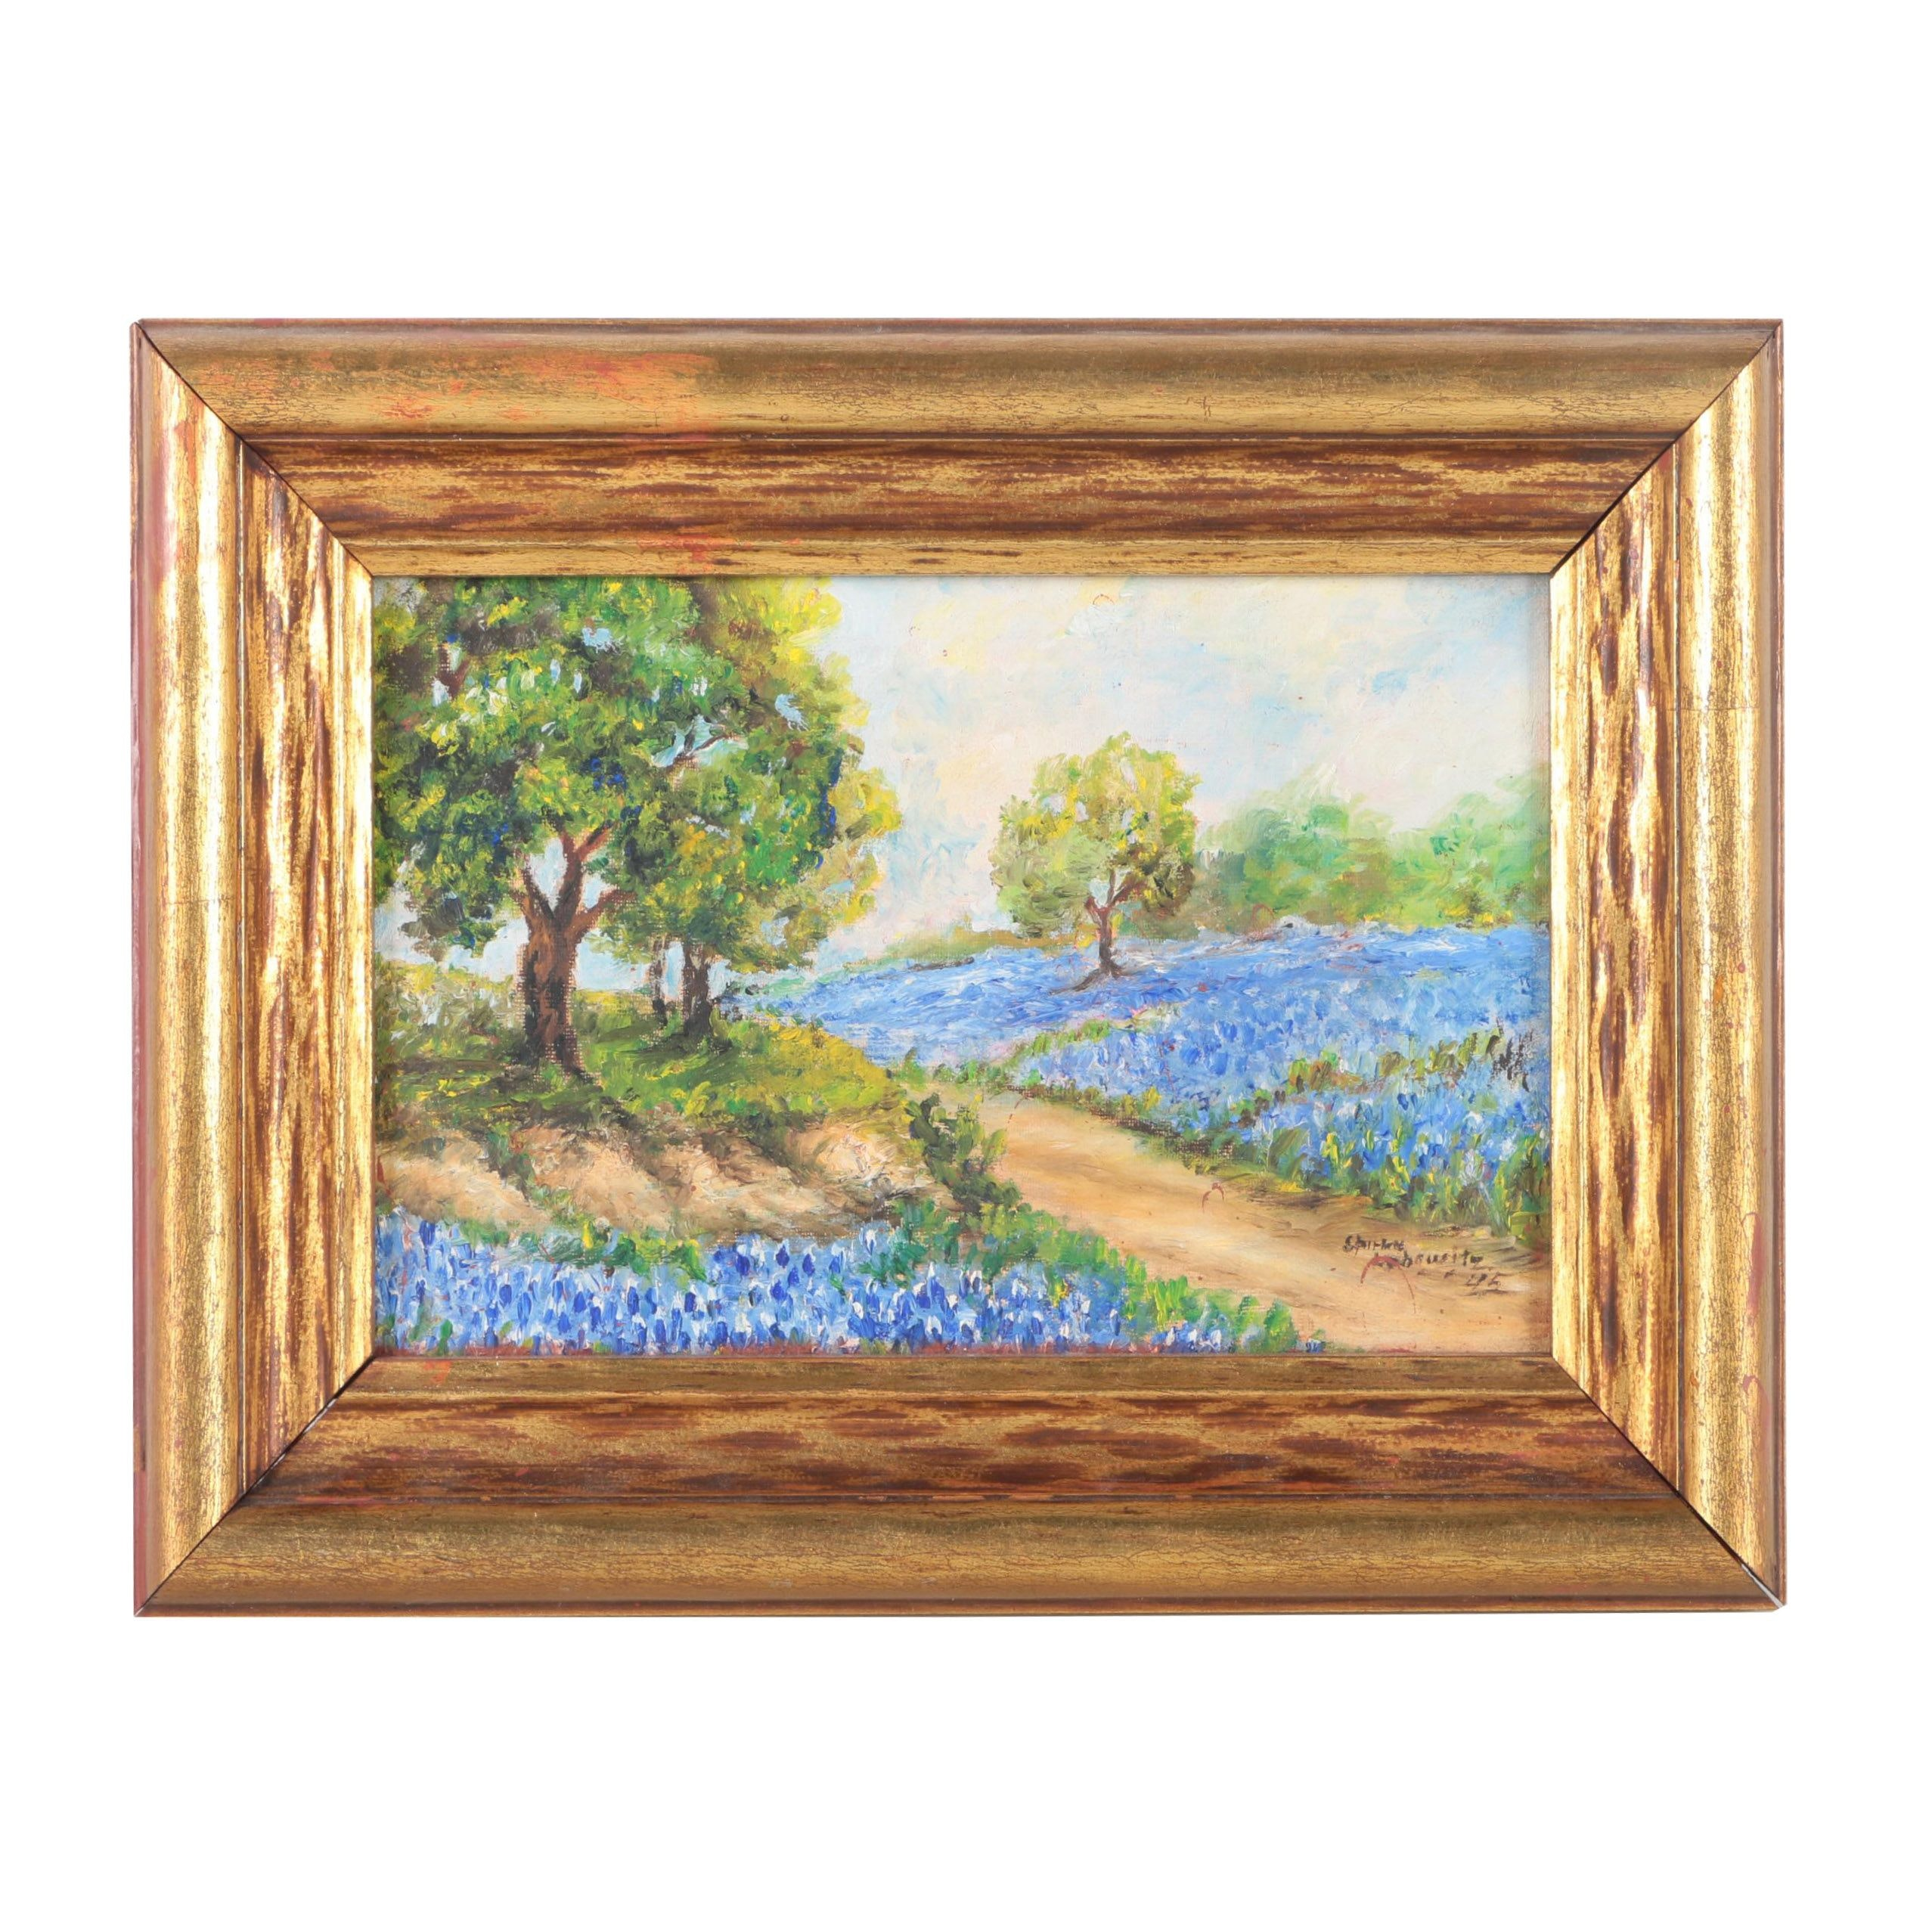 Oil Painting of Texas Bluebonnets